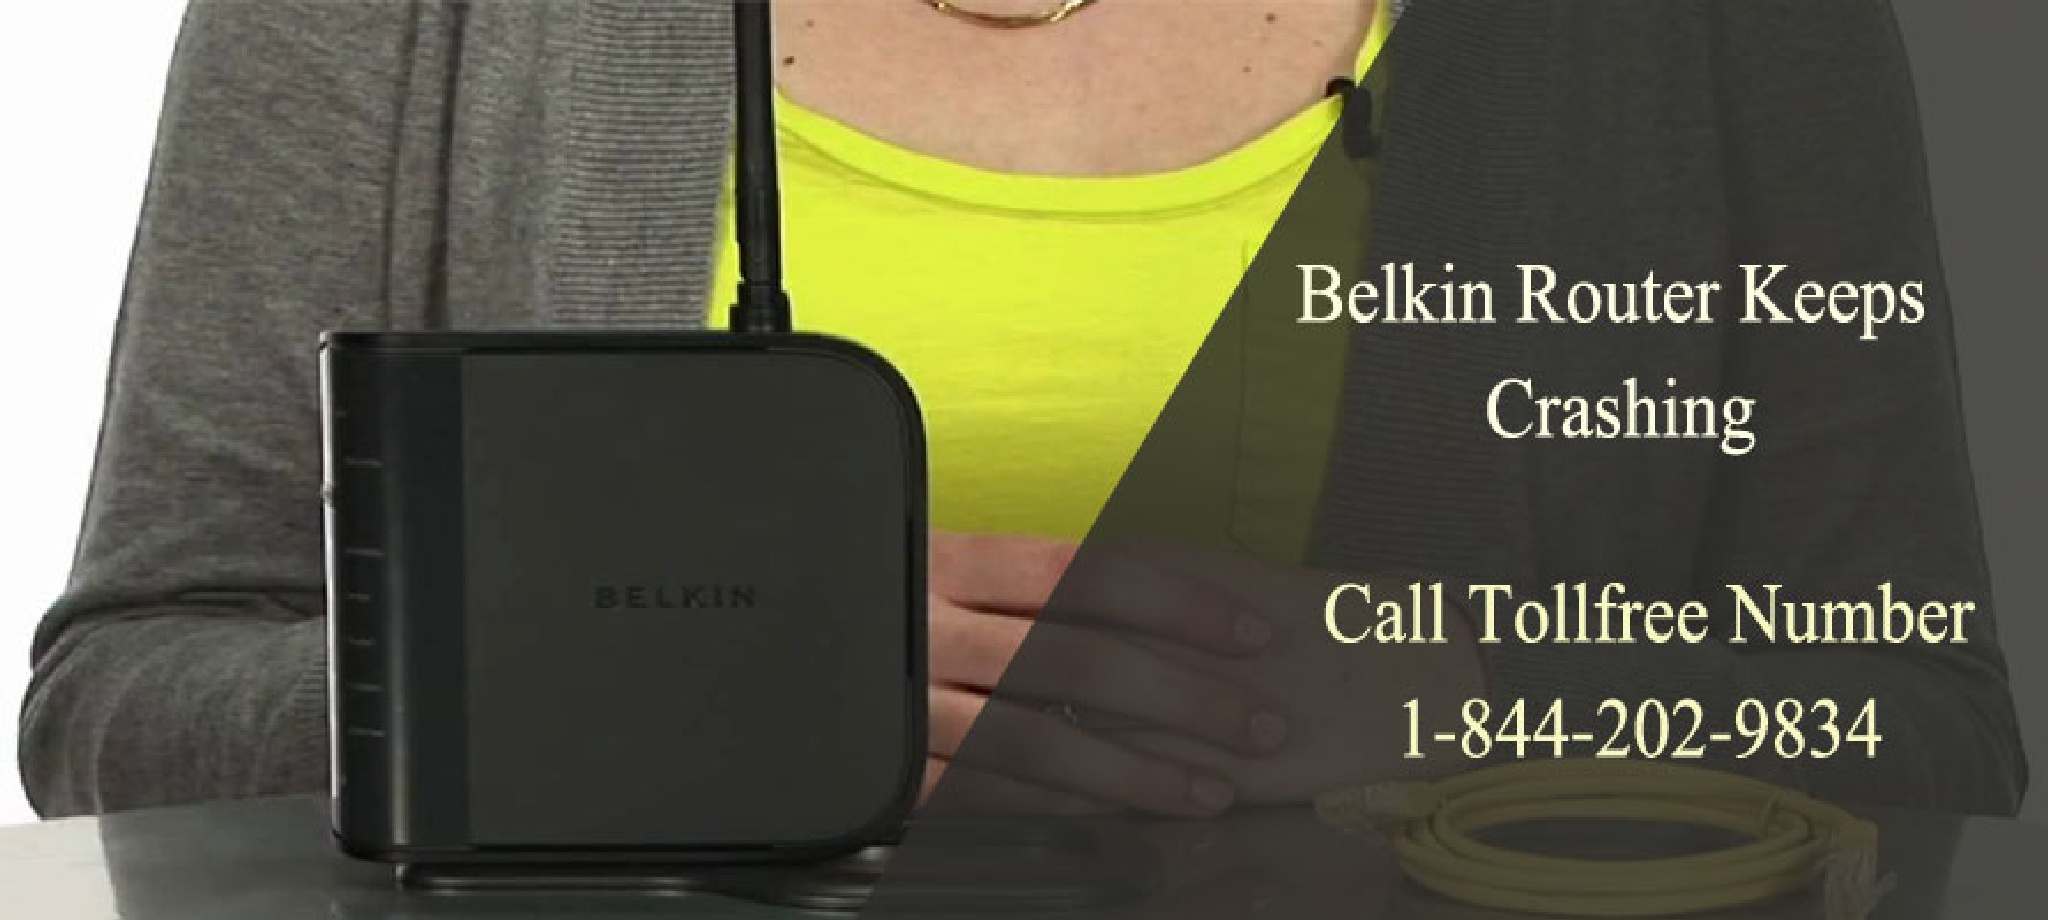 1-844-202-9834 Belkin Router Tech Support Number  by Emily Cooper